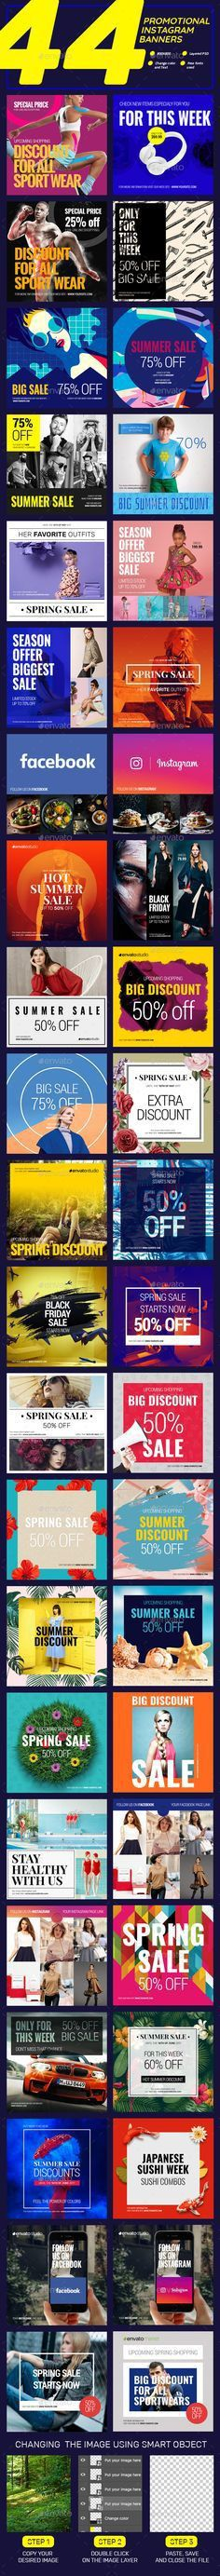 Boxing Day Sale Banners | Fonts-logos-icons | Pinterest | Sale ...